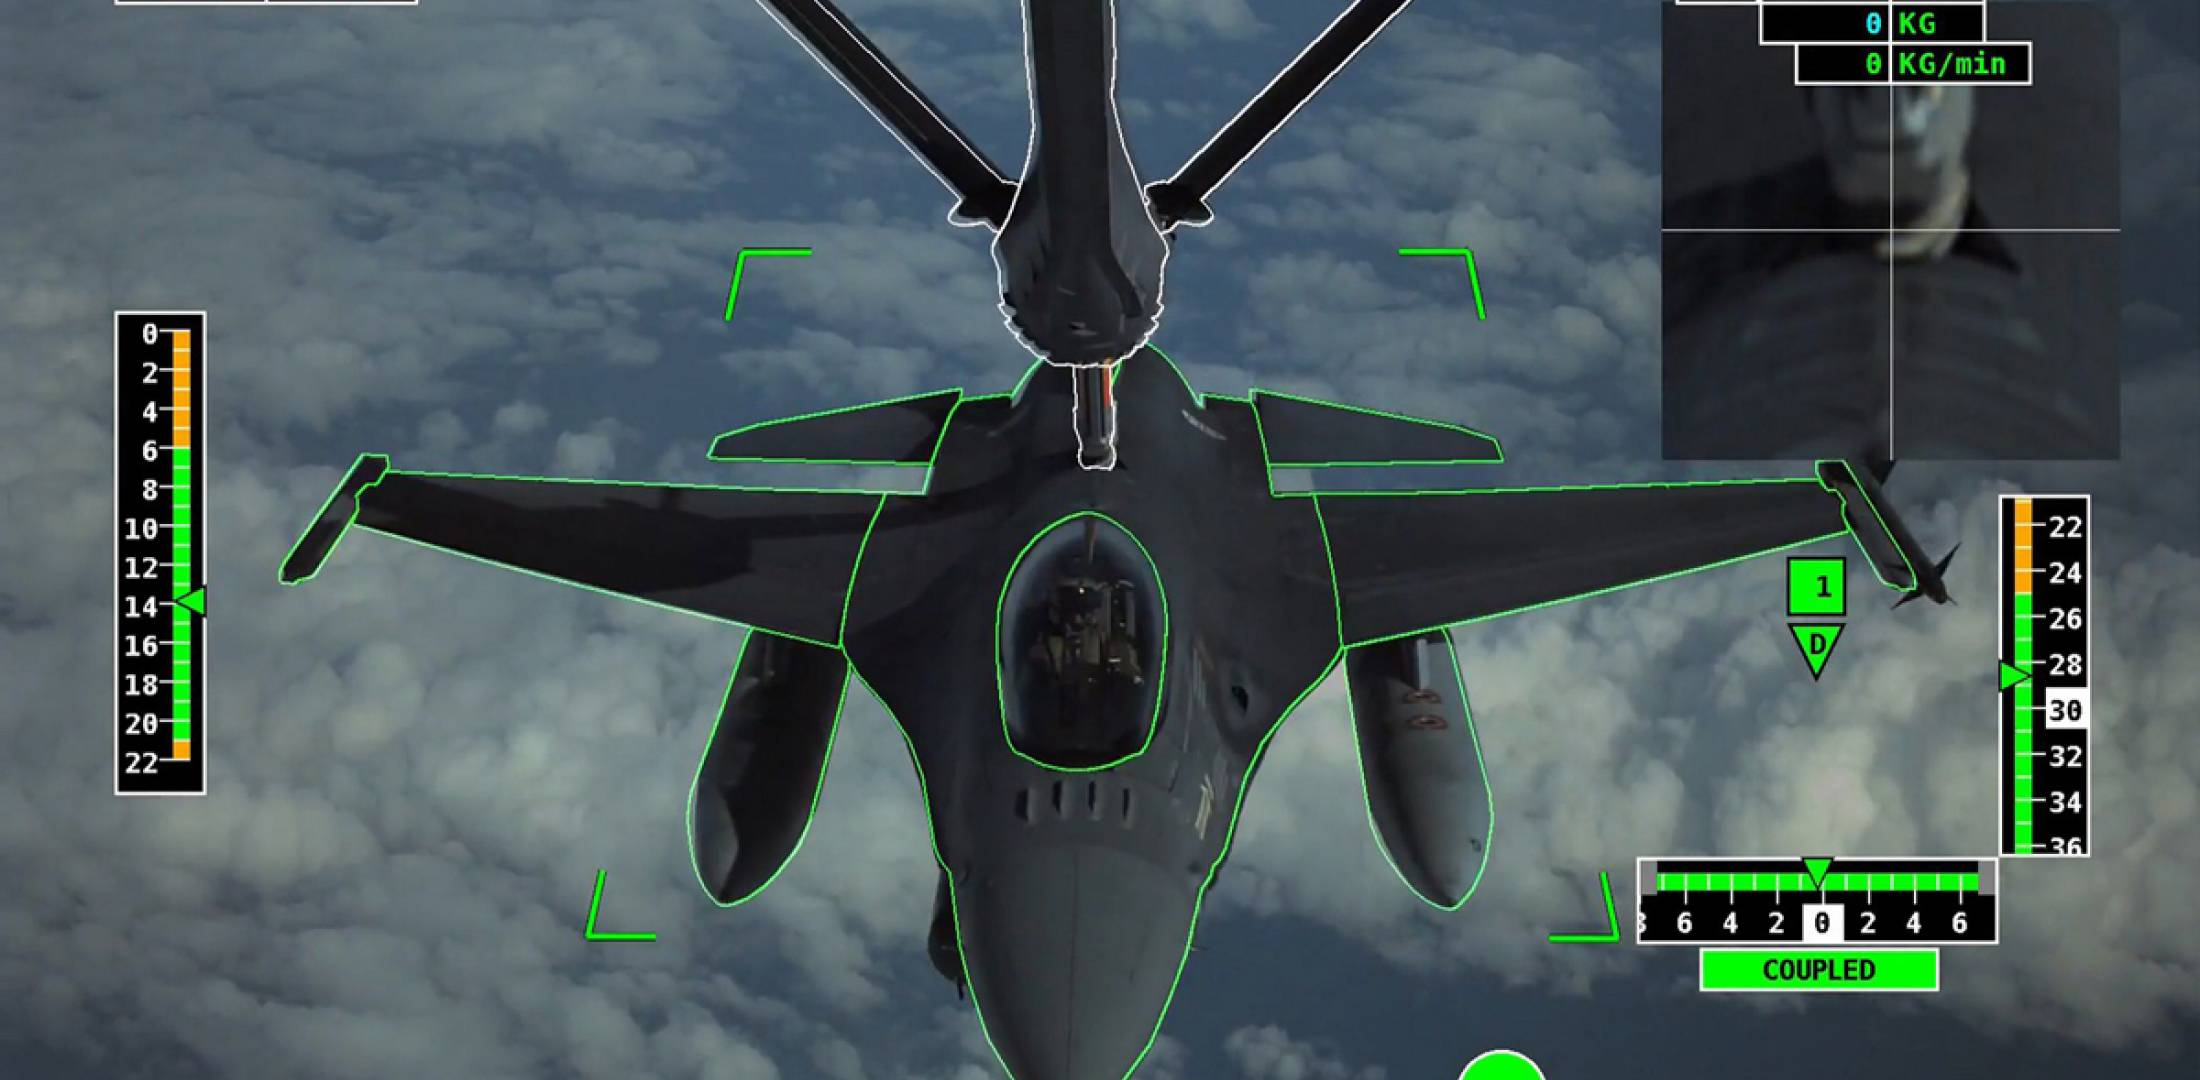 Automatic air-to-air refueling